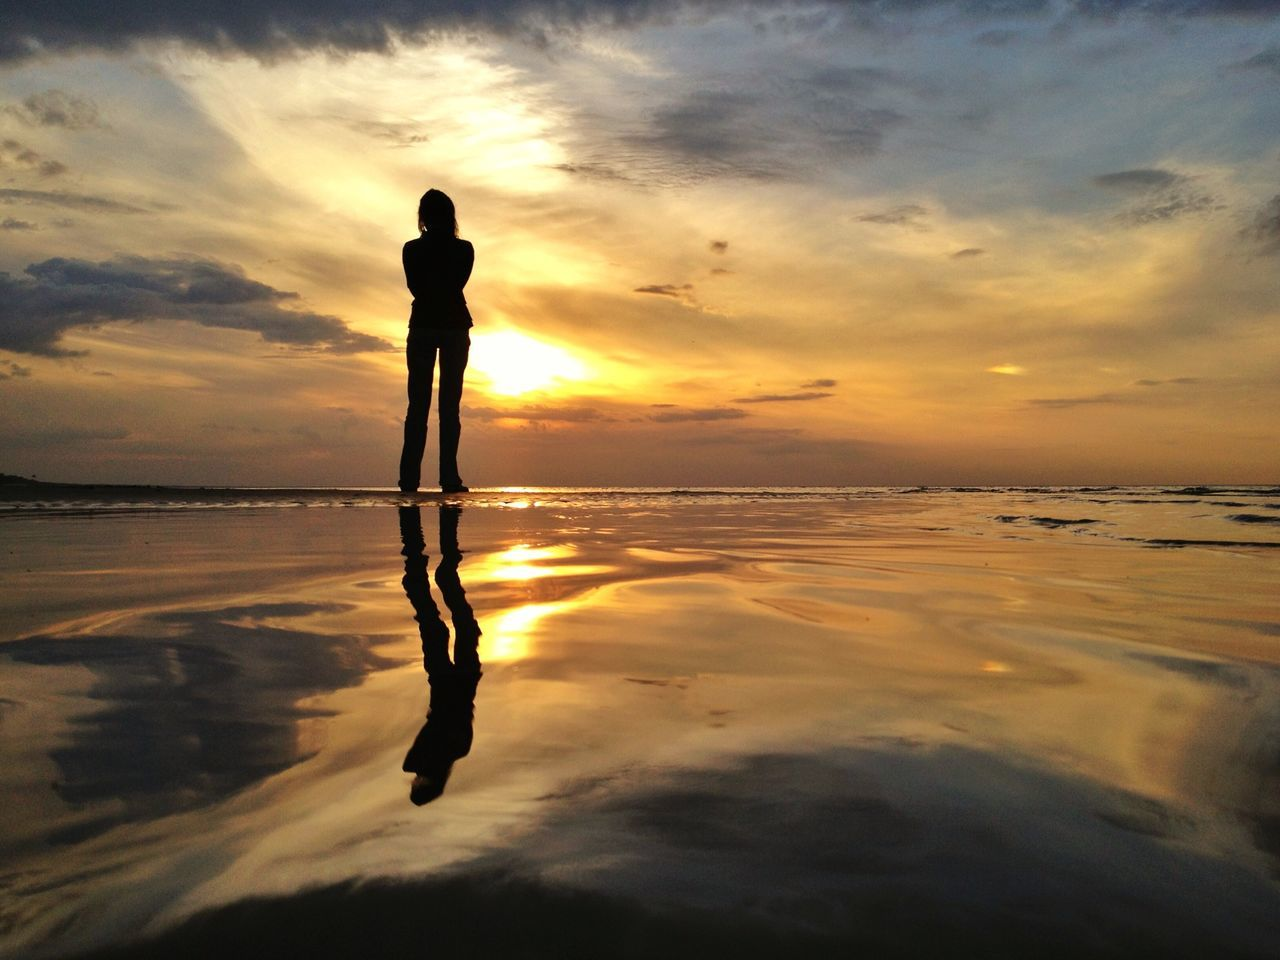 Reflection of silhouette woman on beach against sky during sunset